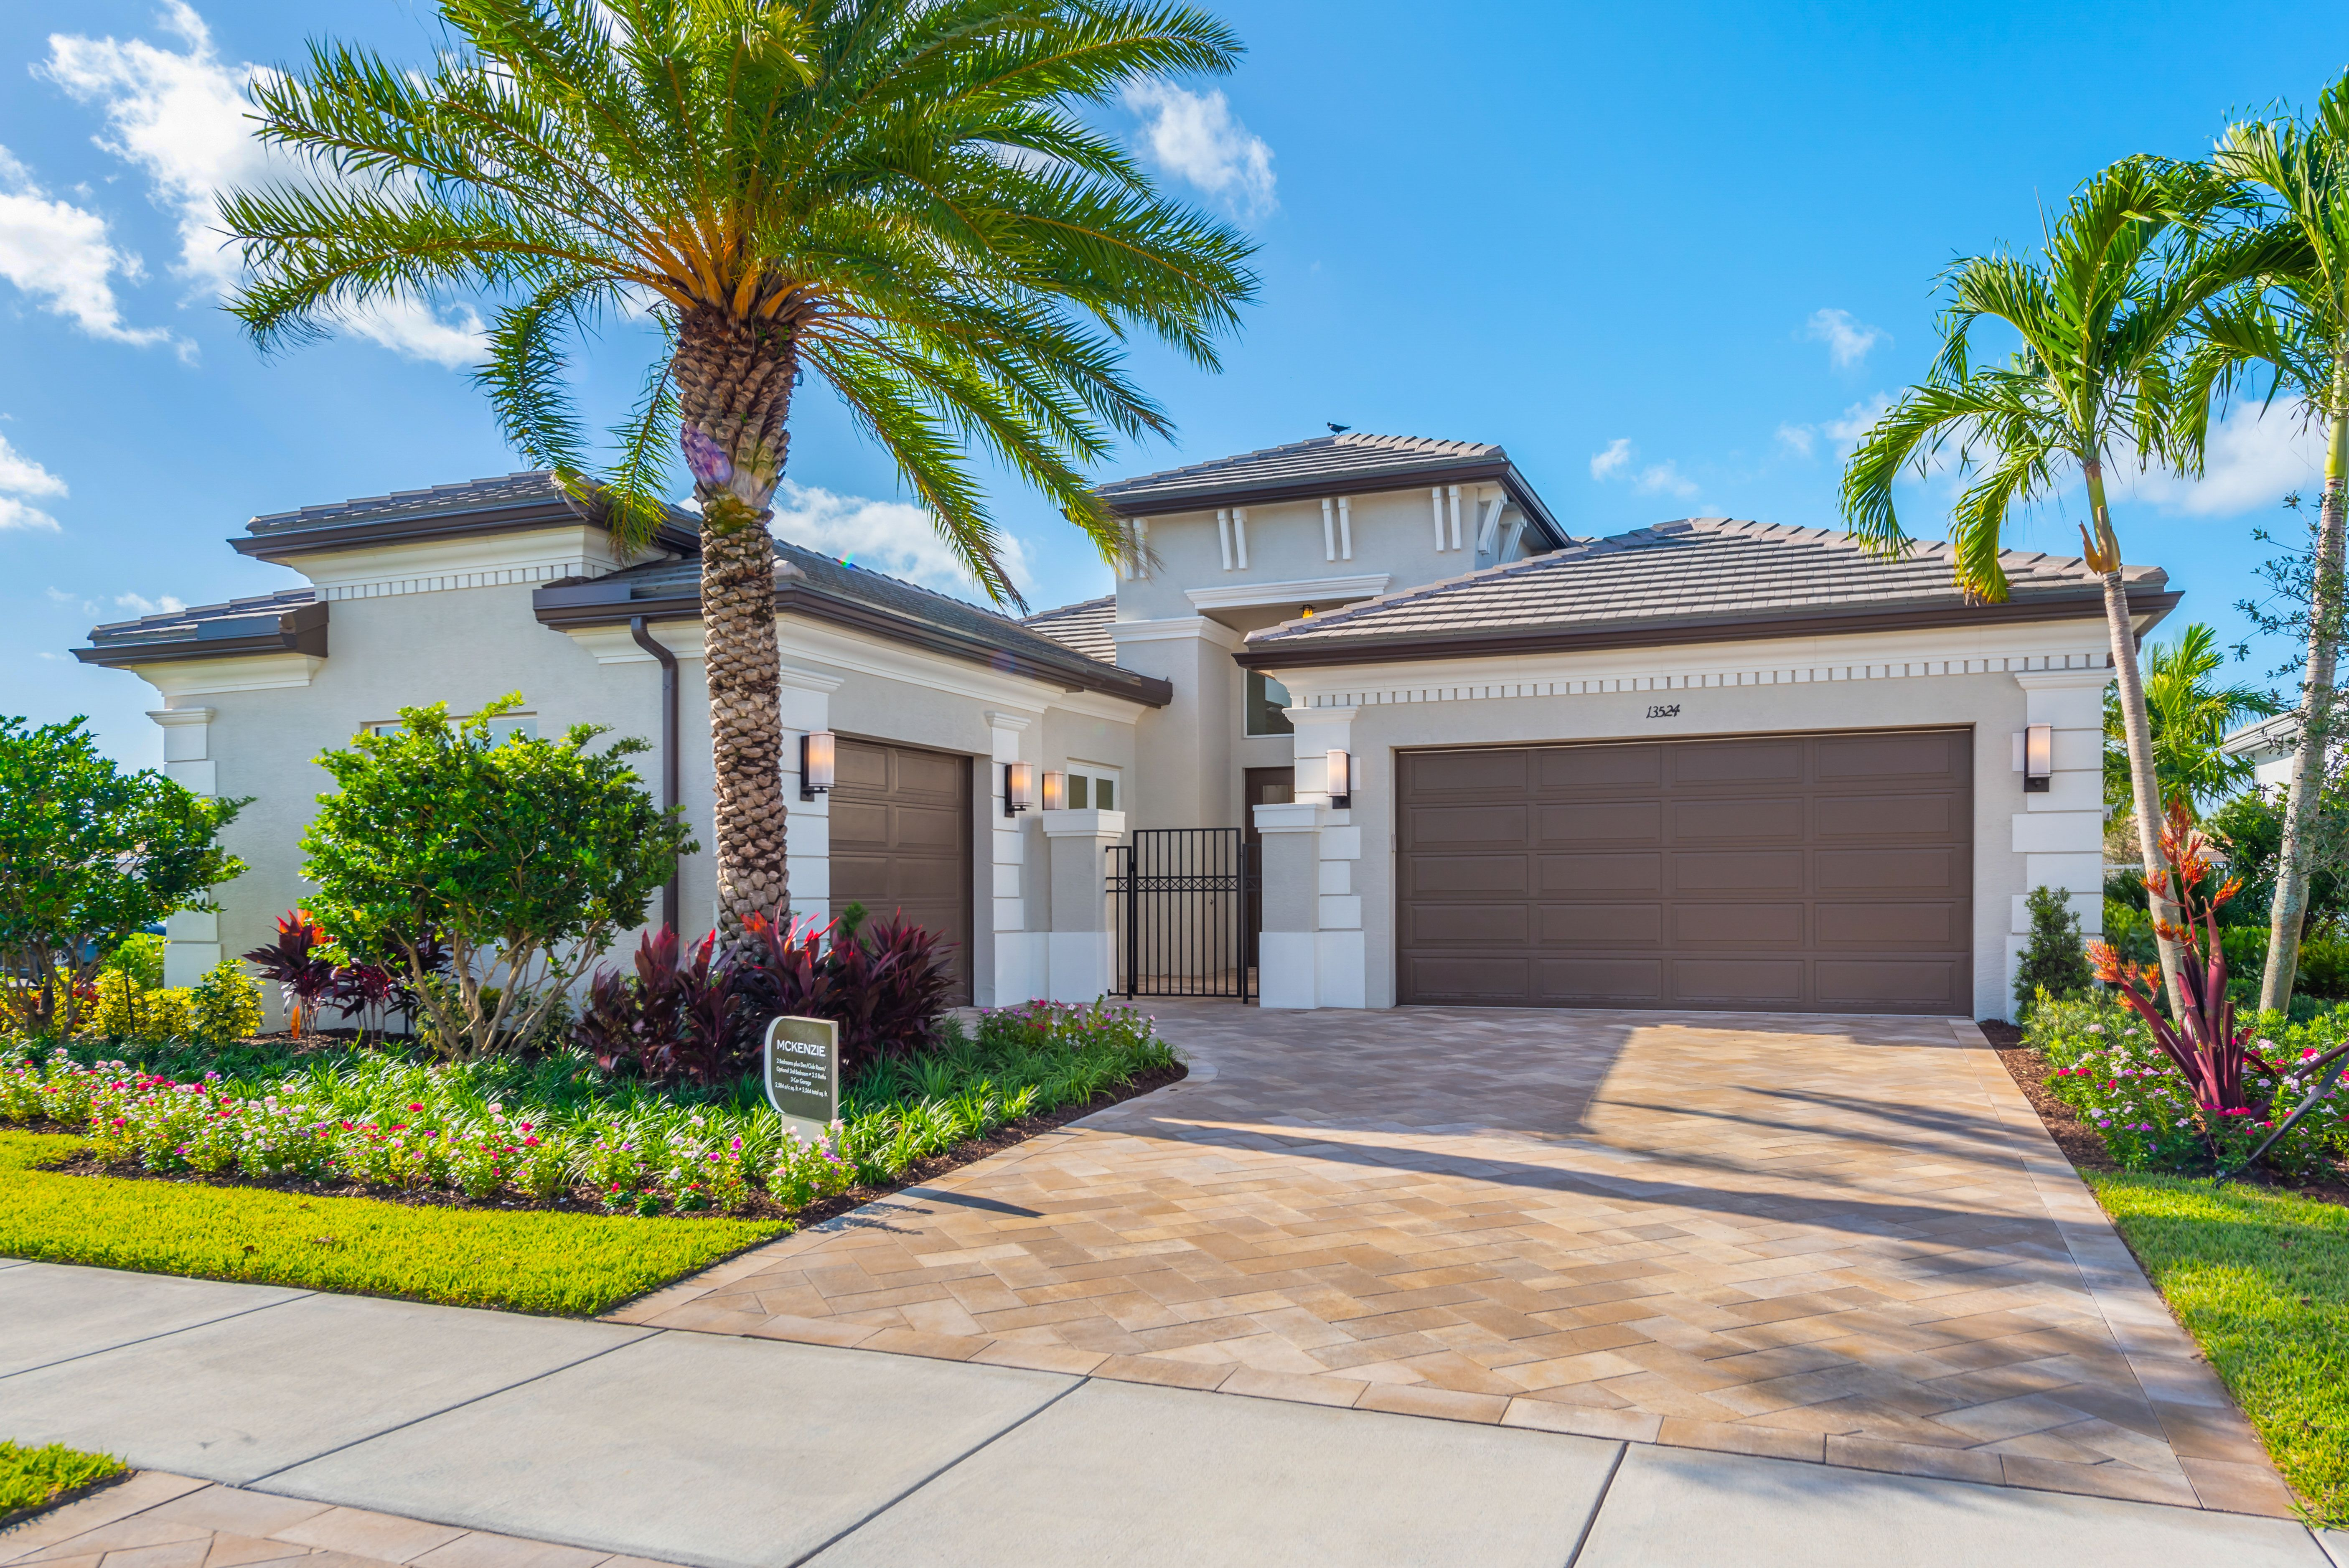 Luxury Homes In Delray Beach Fl Gl Homes In 2020 Single Storey House Plans House Exterior Florida Real Estate